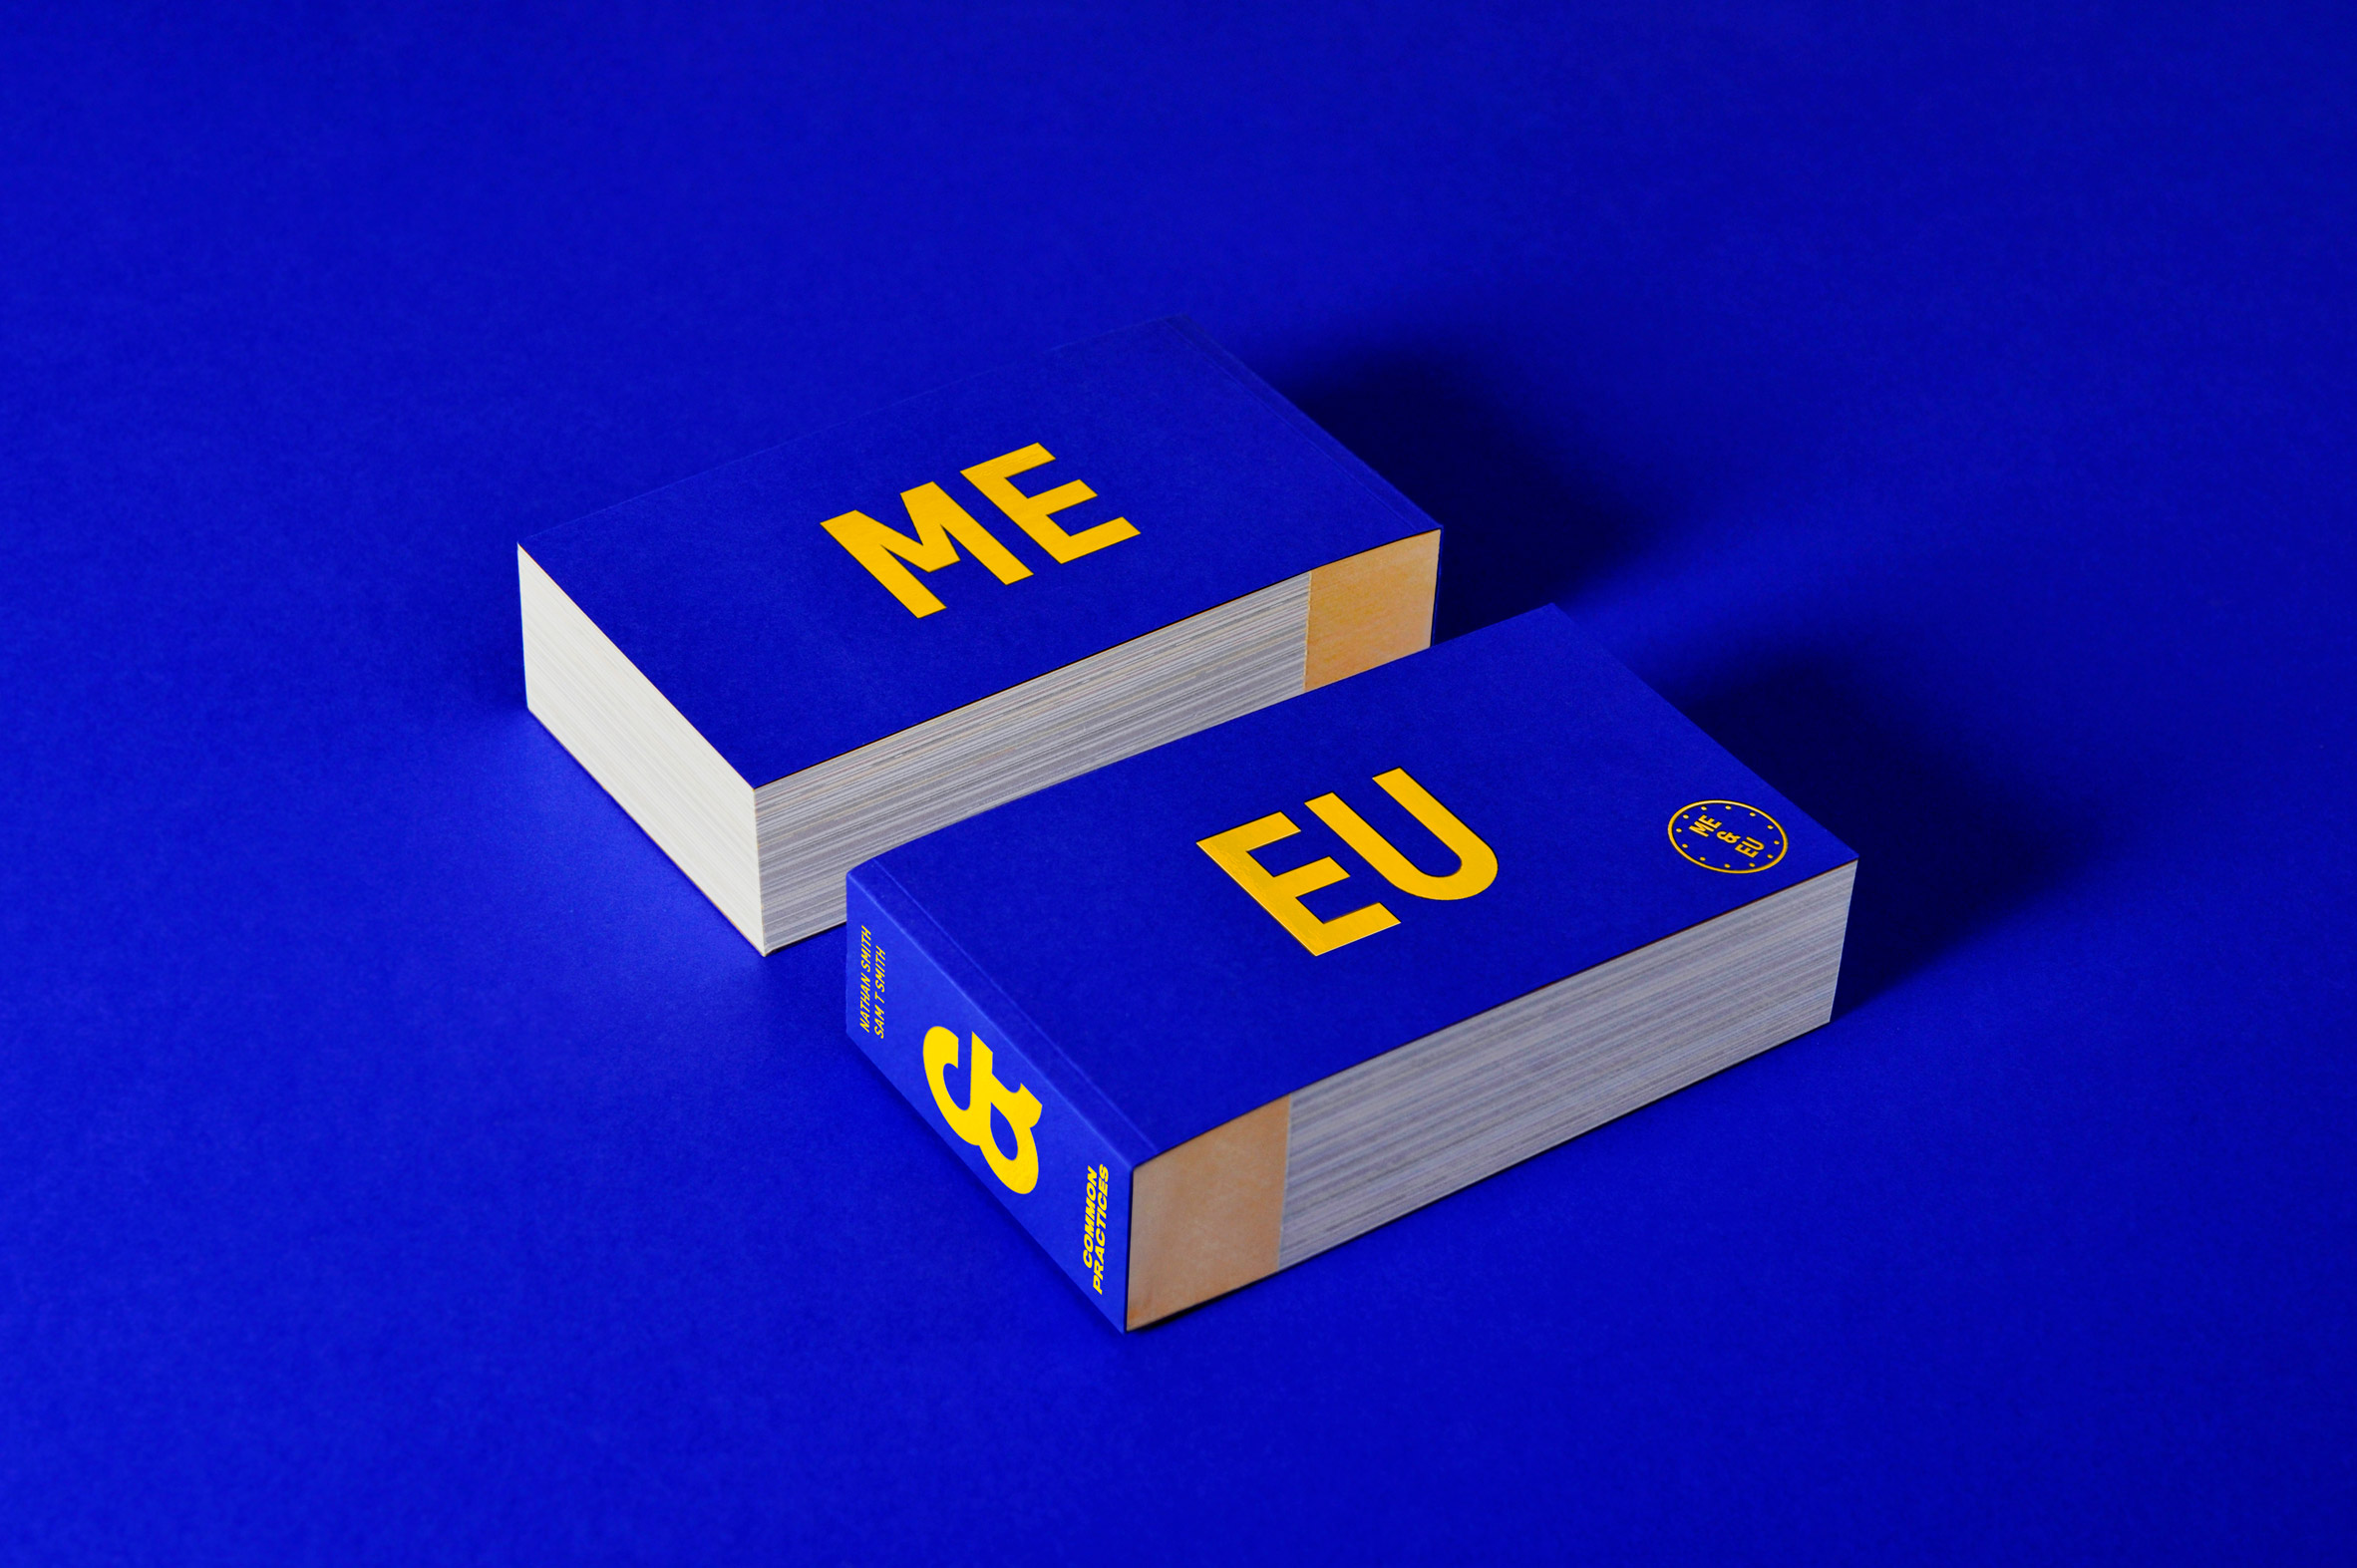 Me & EU book includes over 100 postcards for post-Brexit Britain